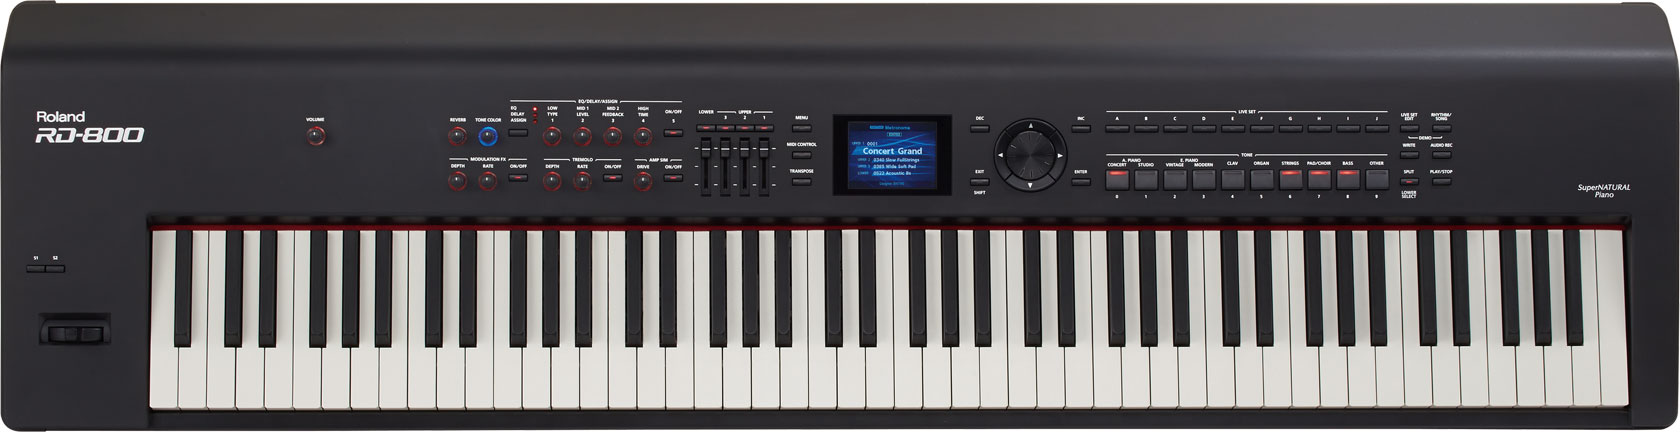 Roland Rd 800 Digital Stage Piano